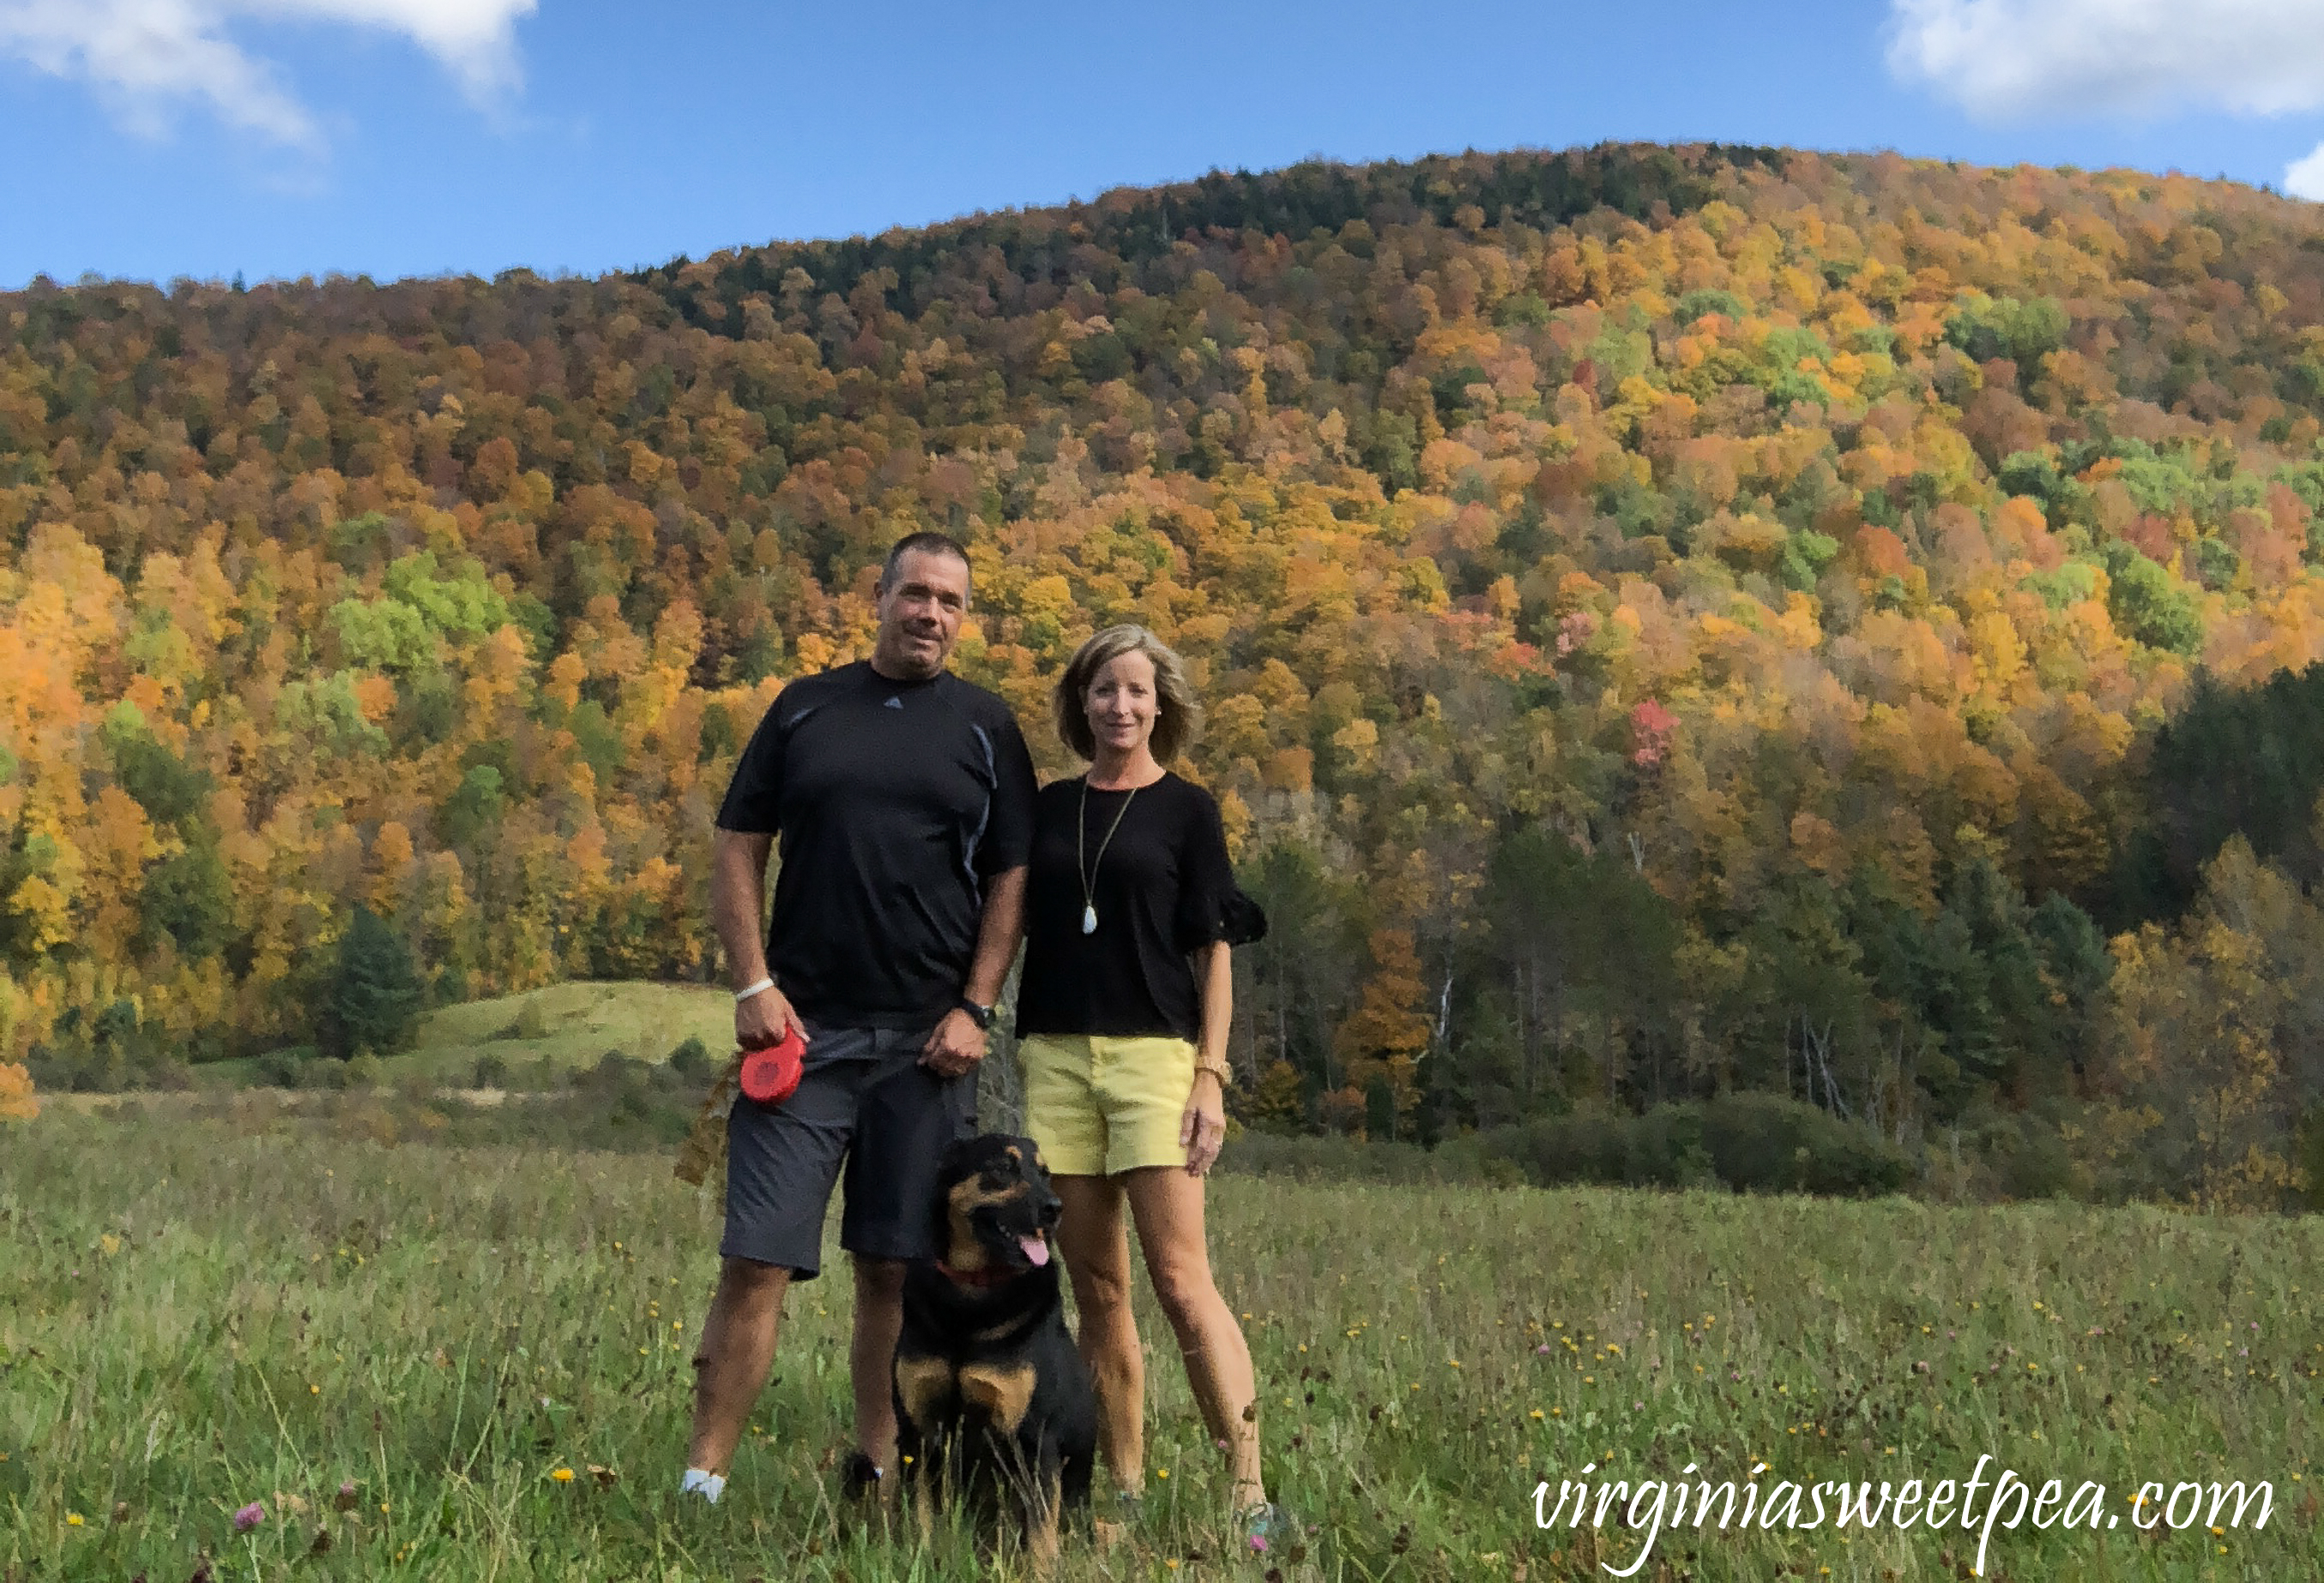 Leaf peeping in Vermont #vermont #fallinvermont